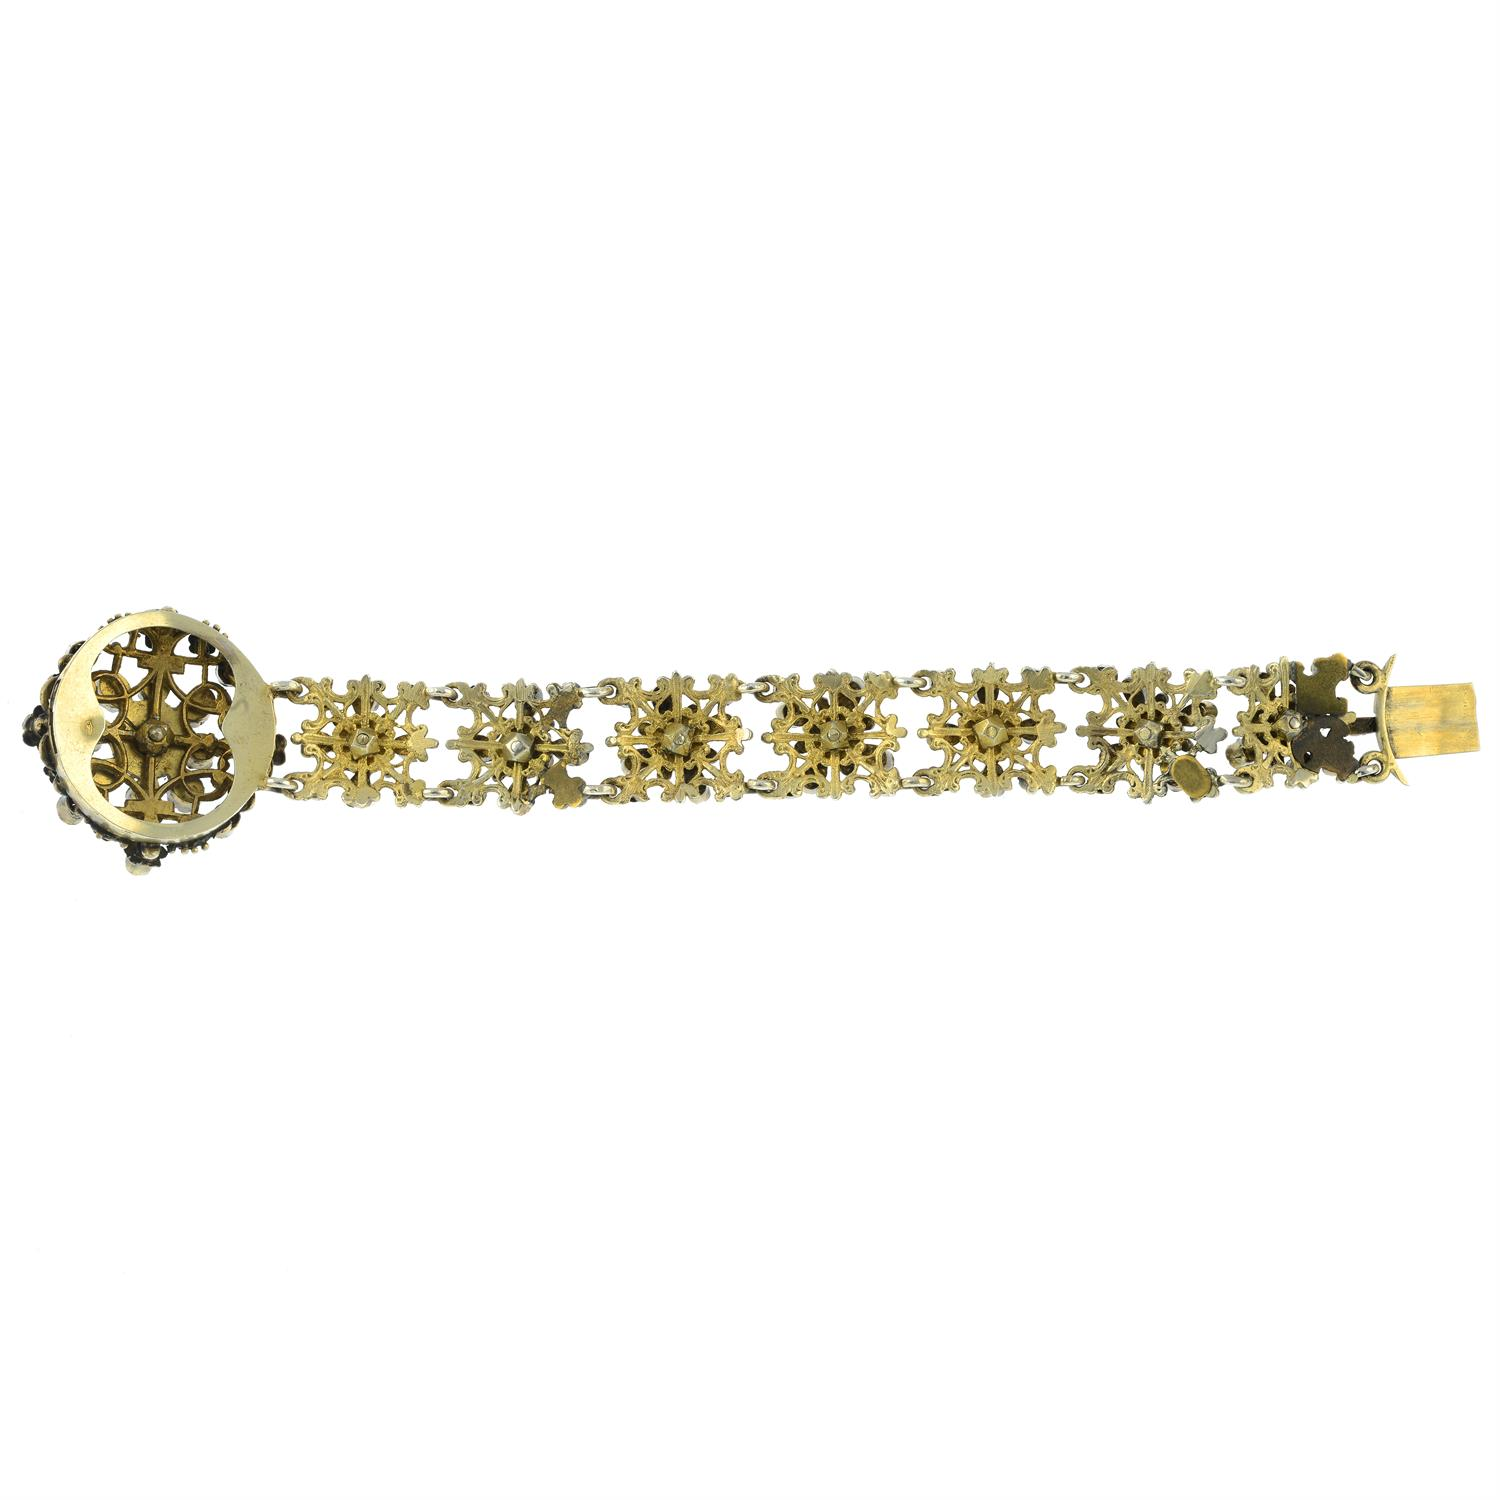 A late 19th century Austro Hungarian silver enamel and gem-set bracelet. - Image 3 of 5